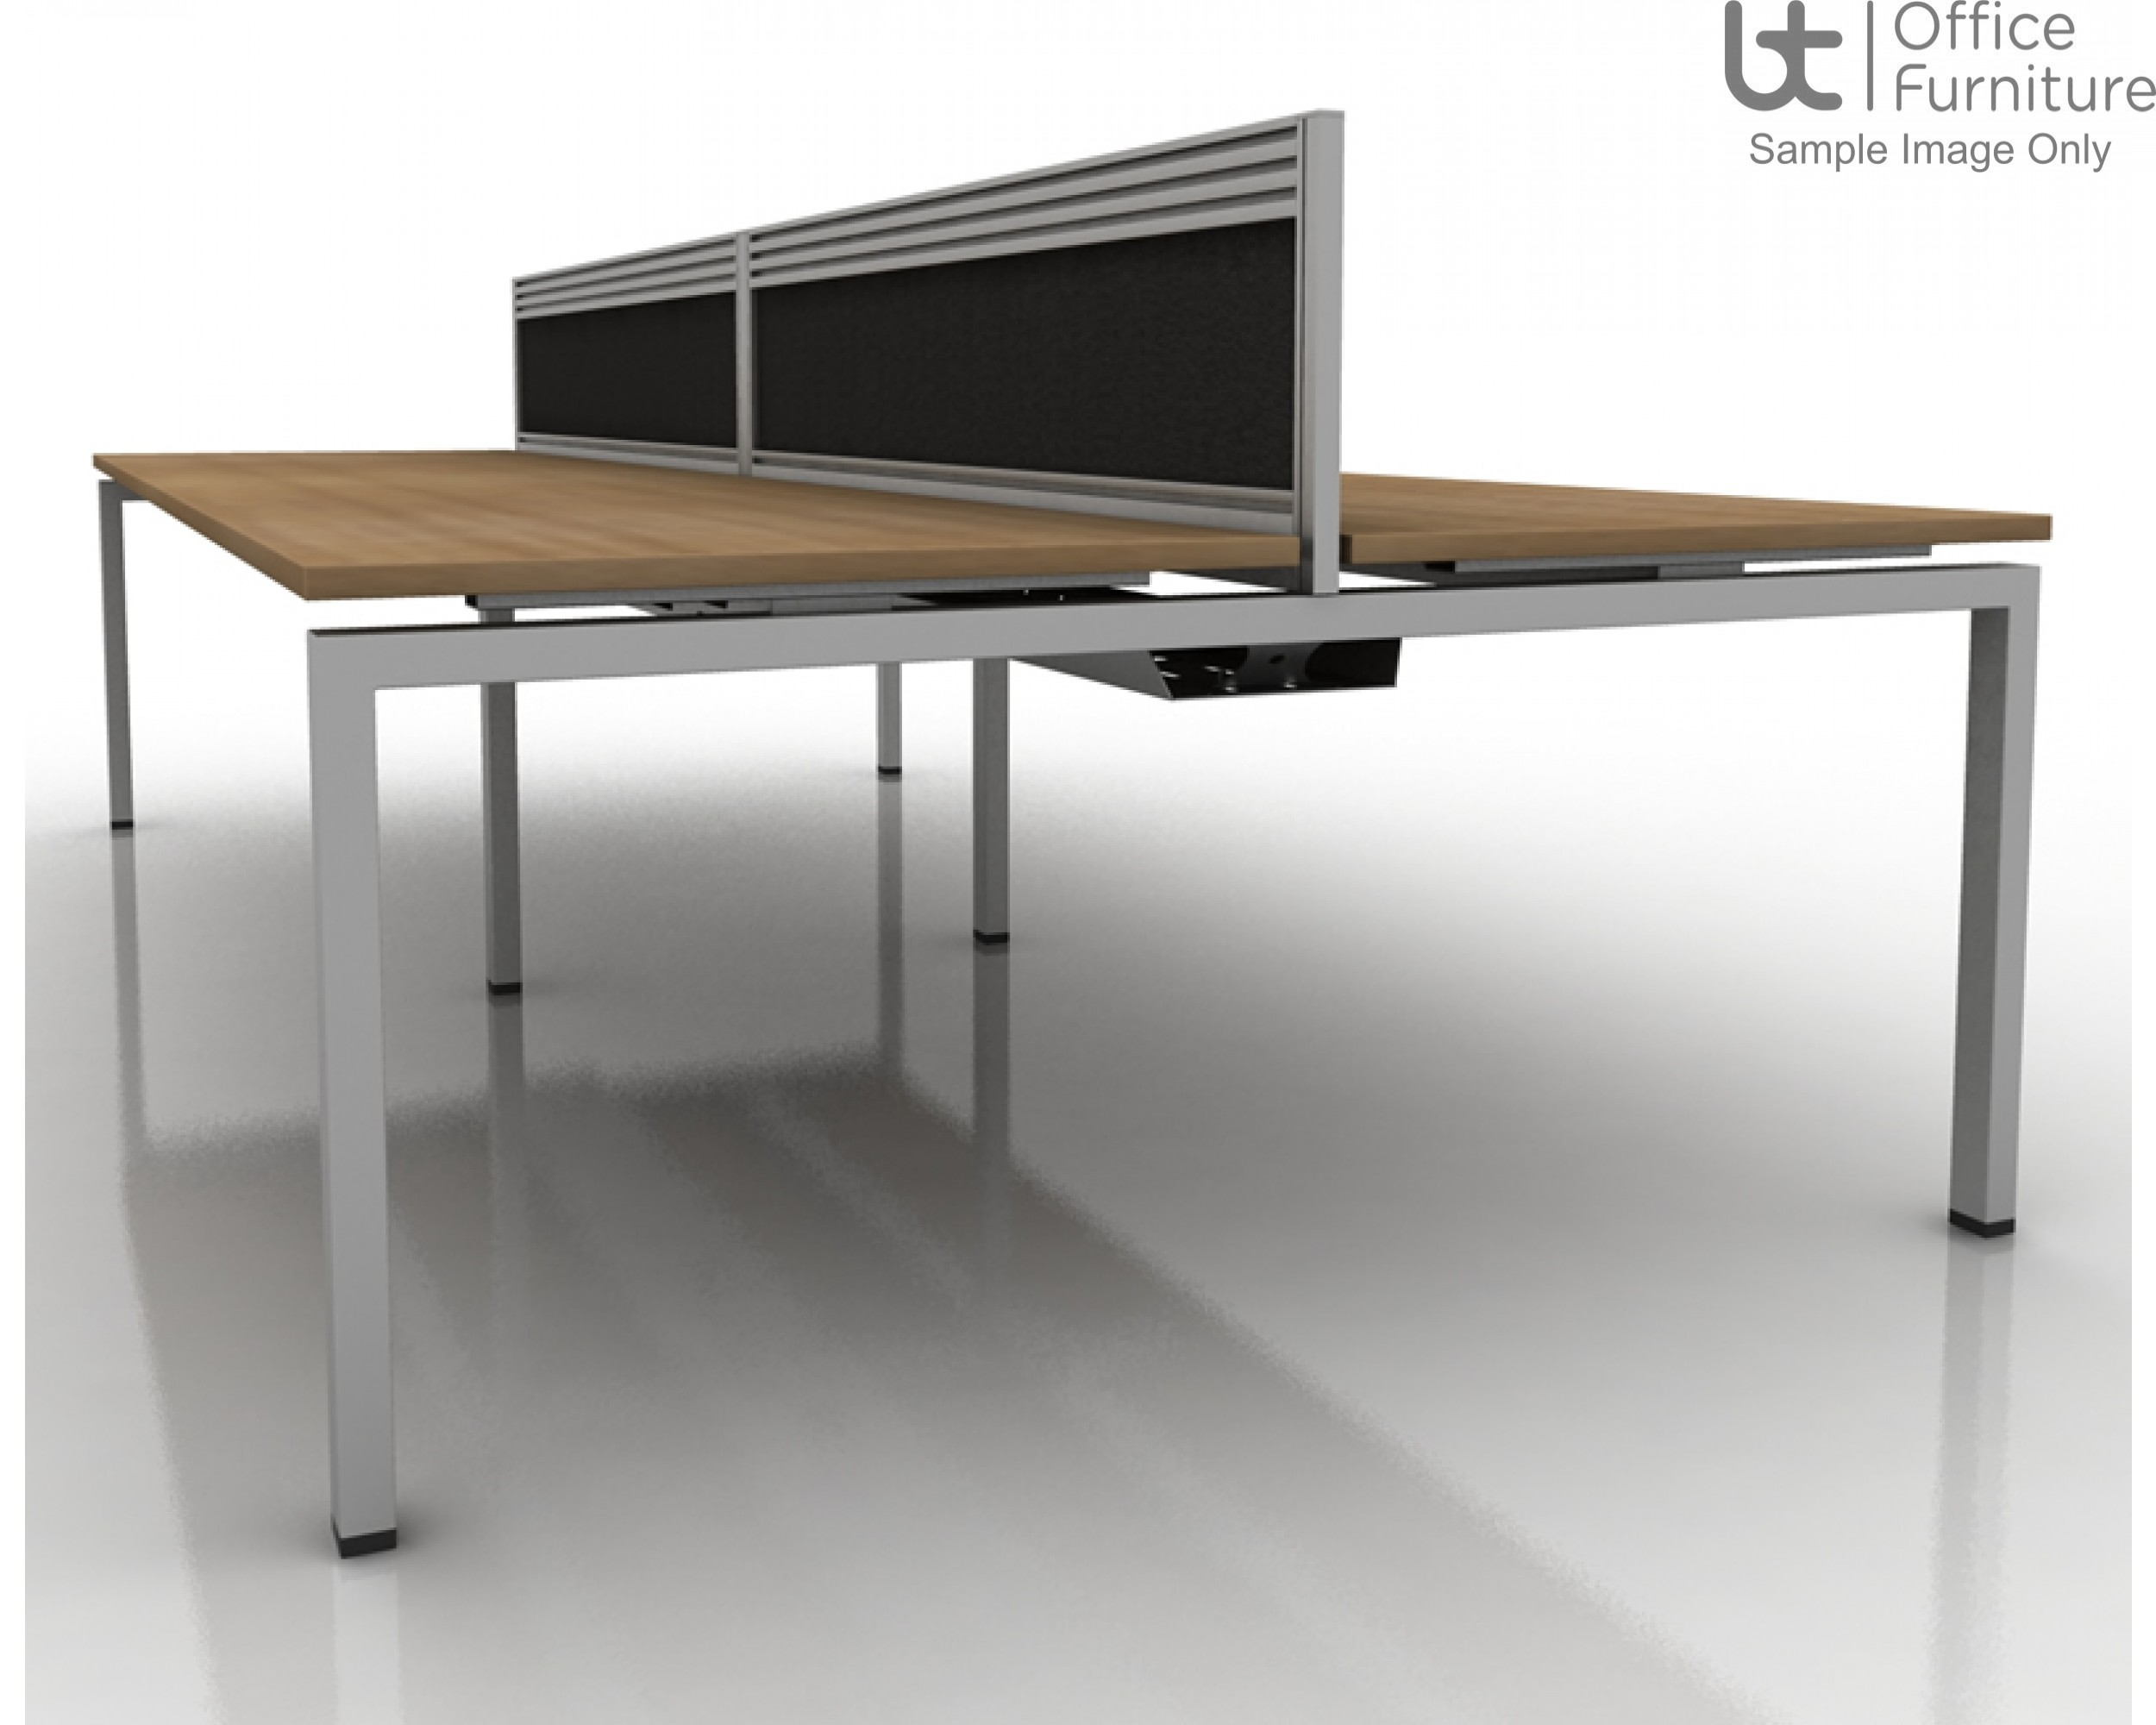 Soho2 Extended Crescent Desk For Supporting Pedestal 800D x 600Dmm - Right Hand Illustrated